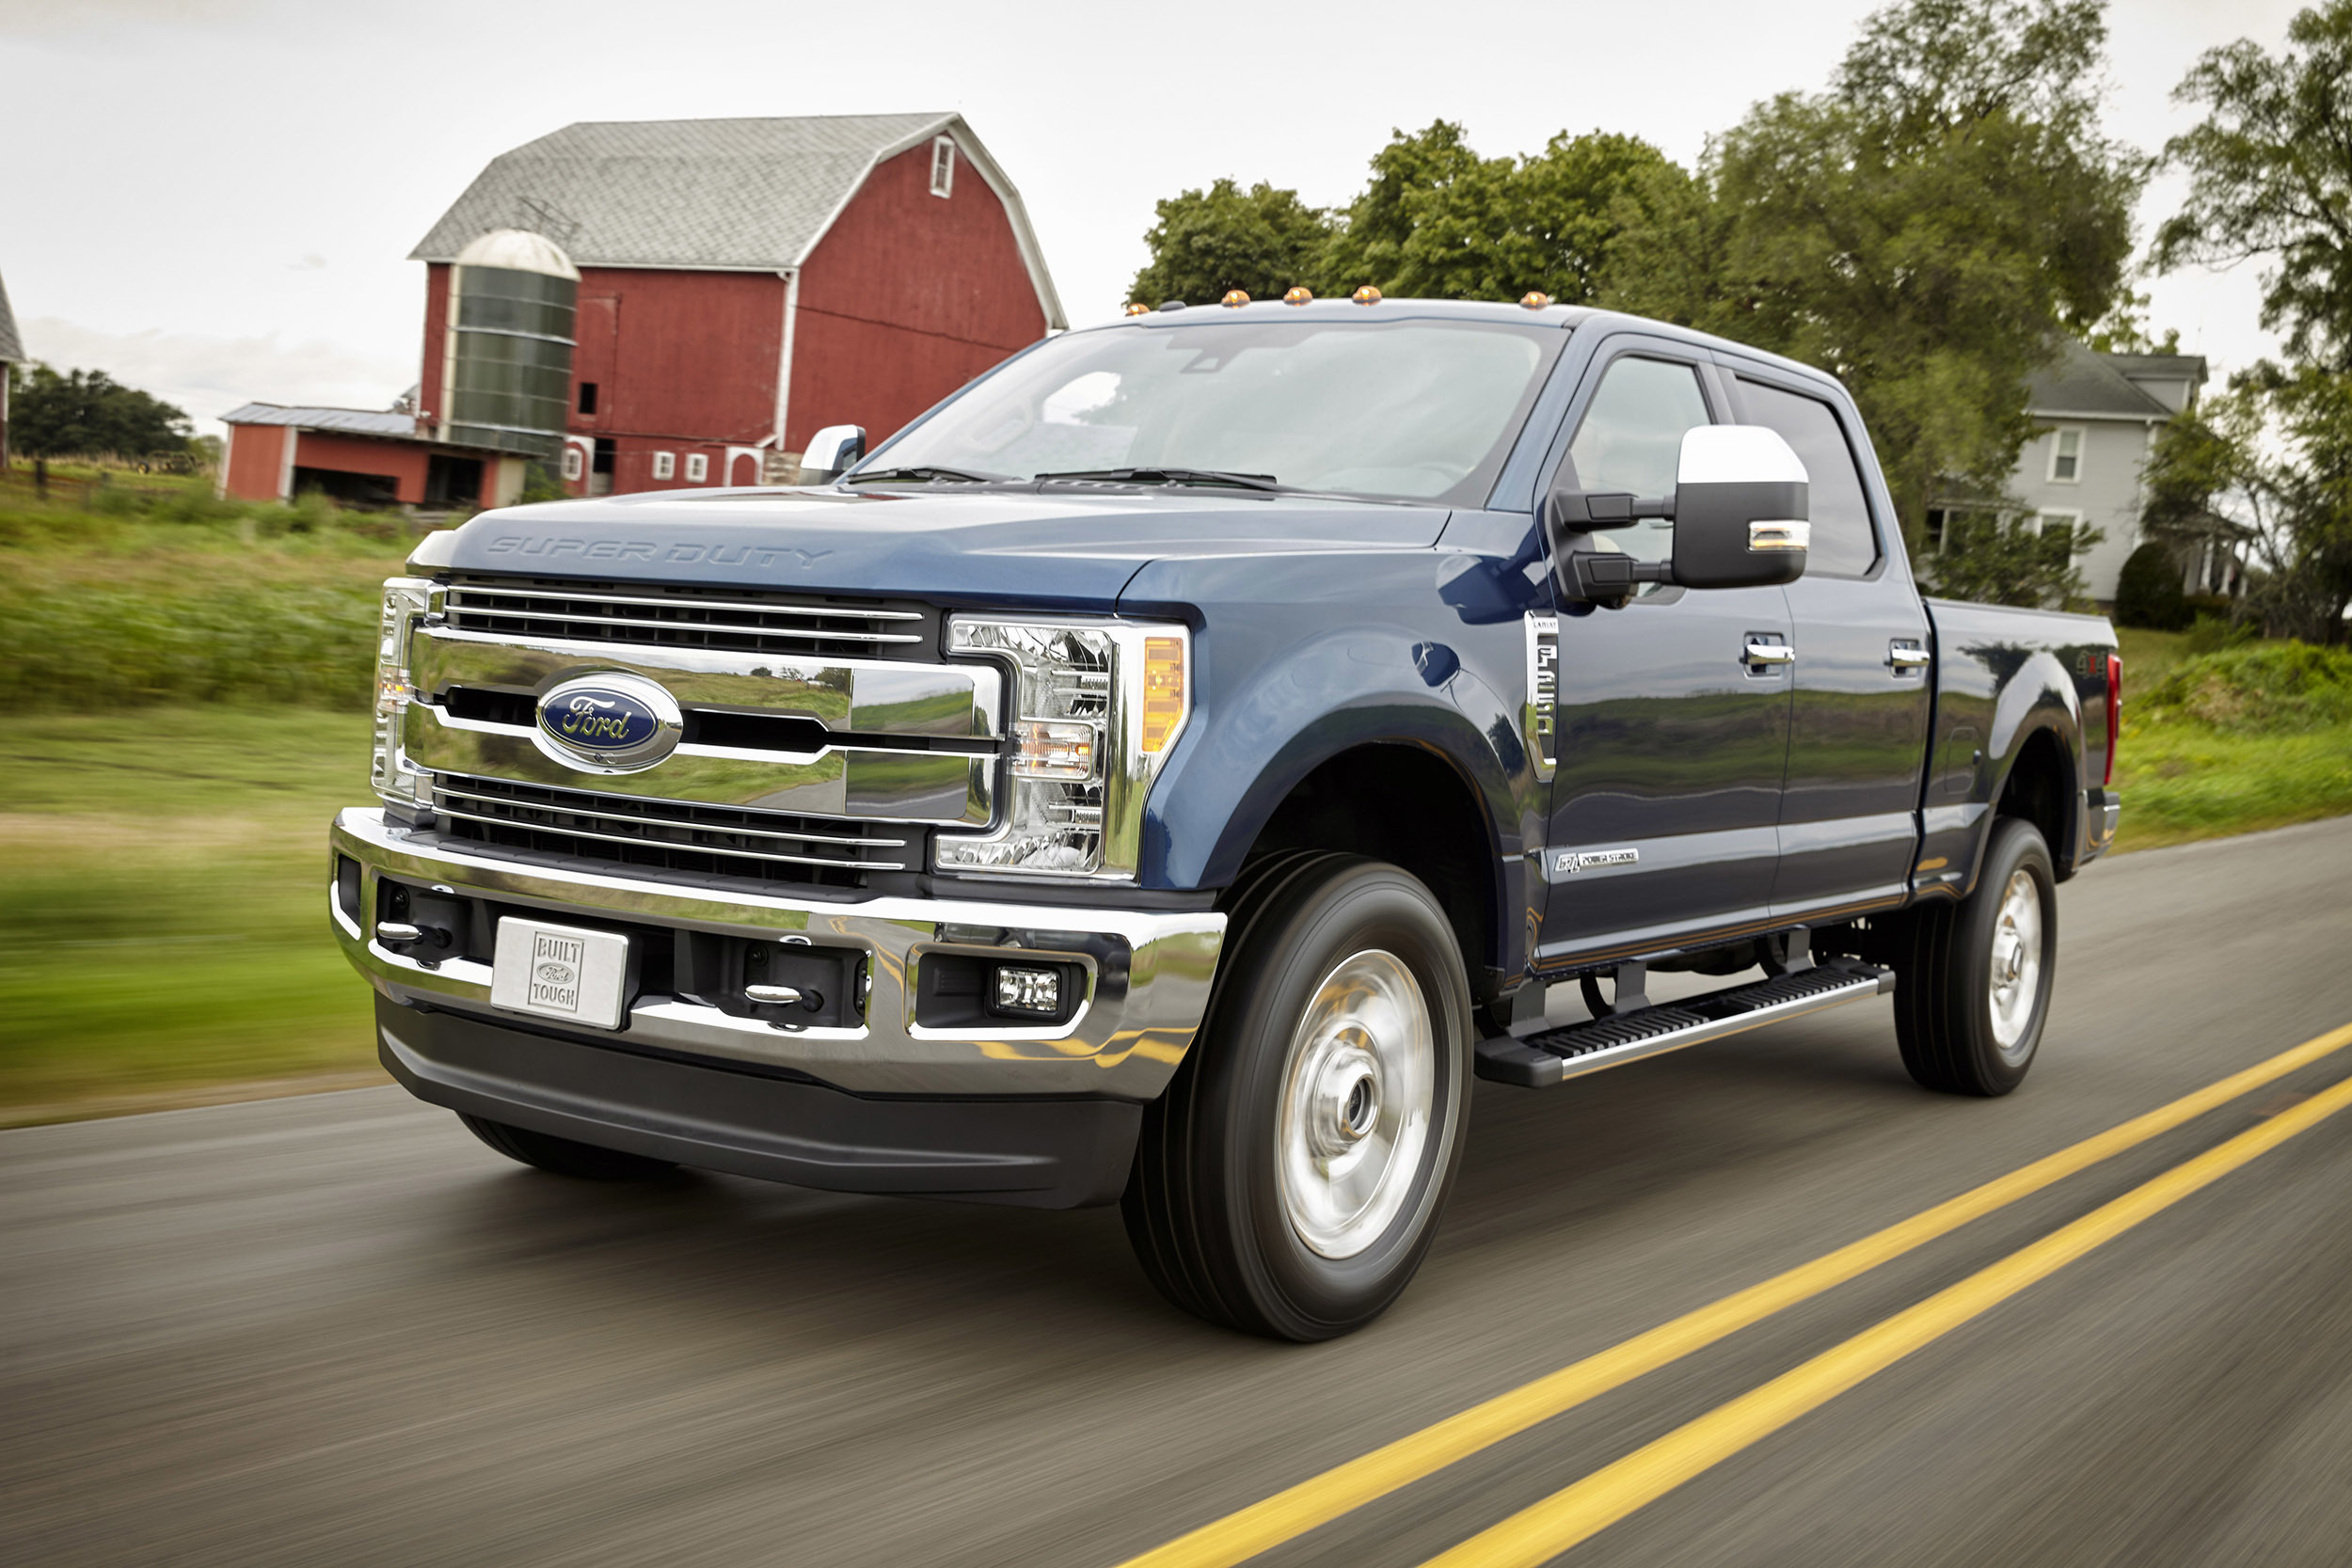 Thread 2017 ford f series super duty family revealed the toughest smartest most aluminum super duty ever